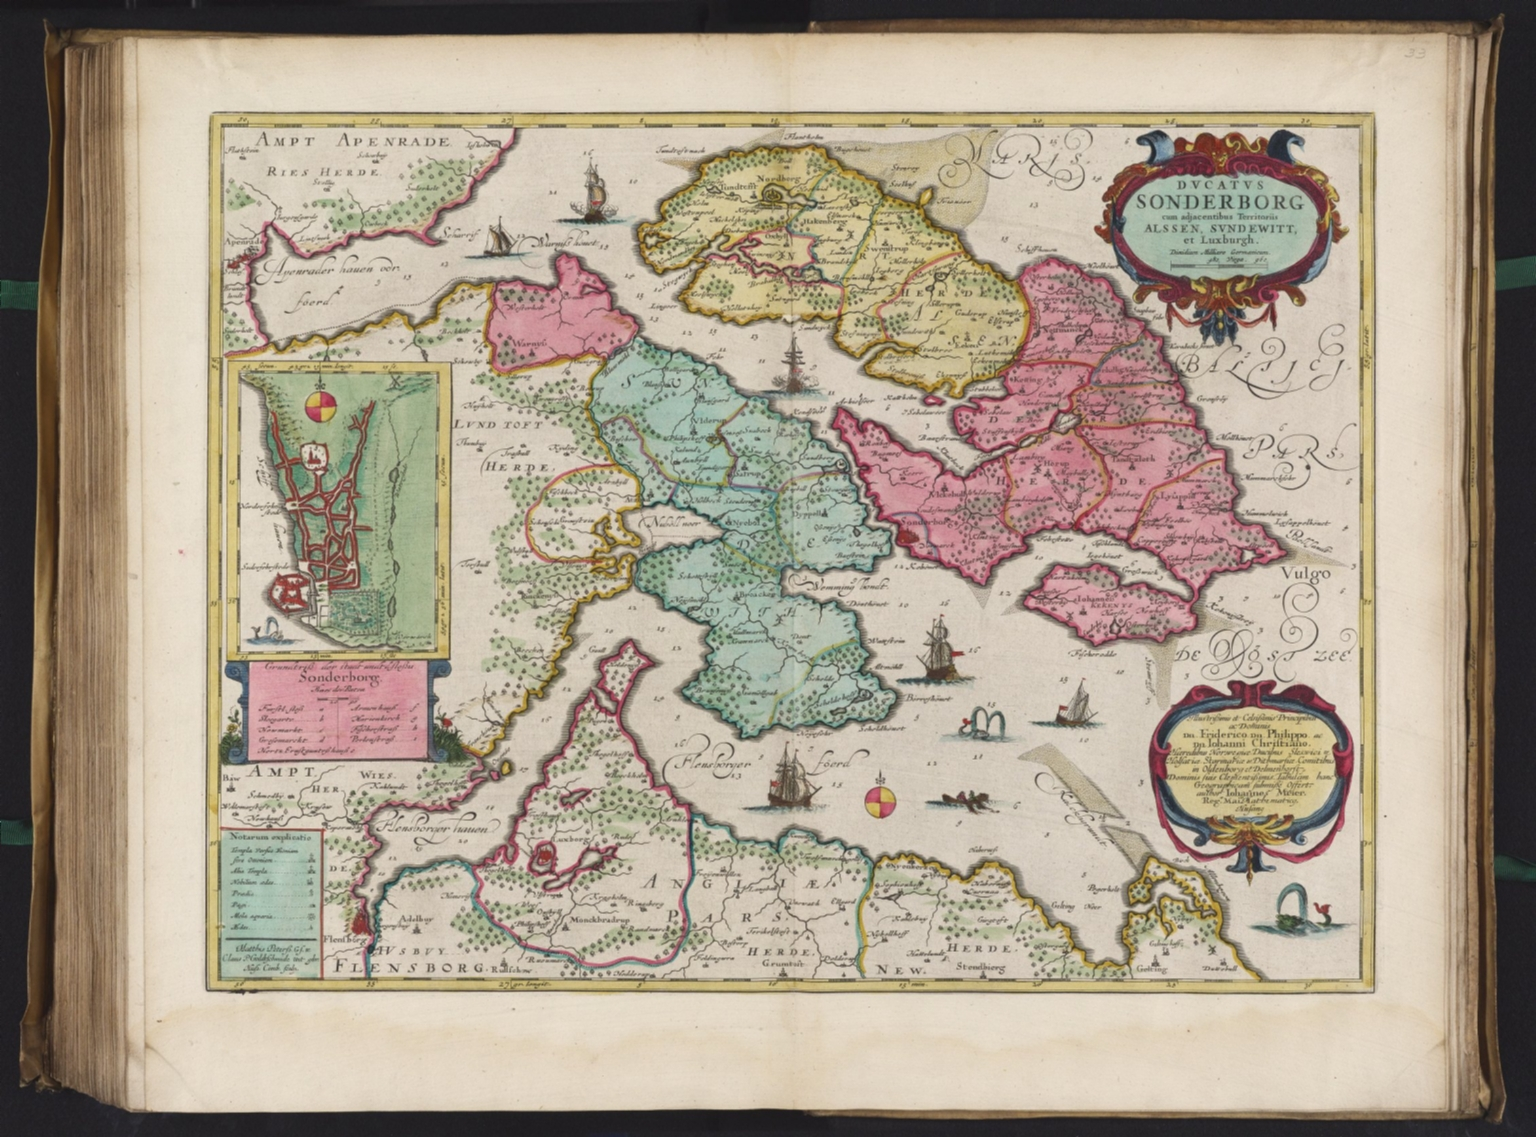 Dvcatvs Sonderborg David Rumsey Historical Map Collection